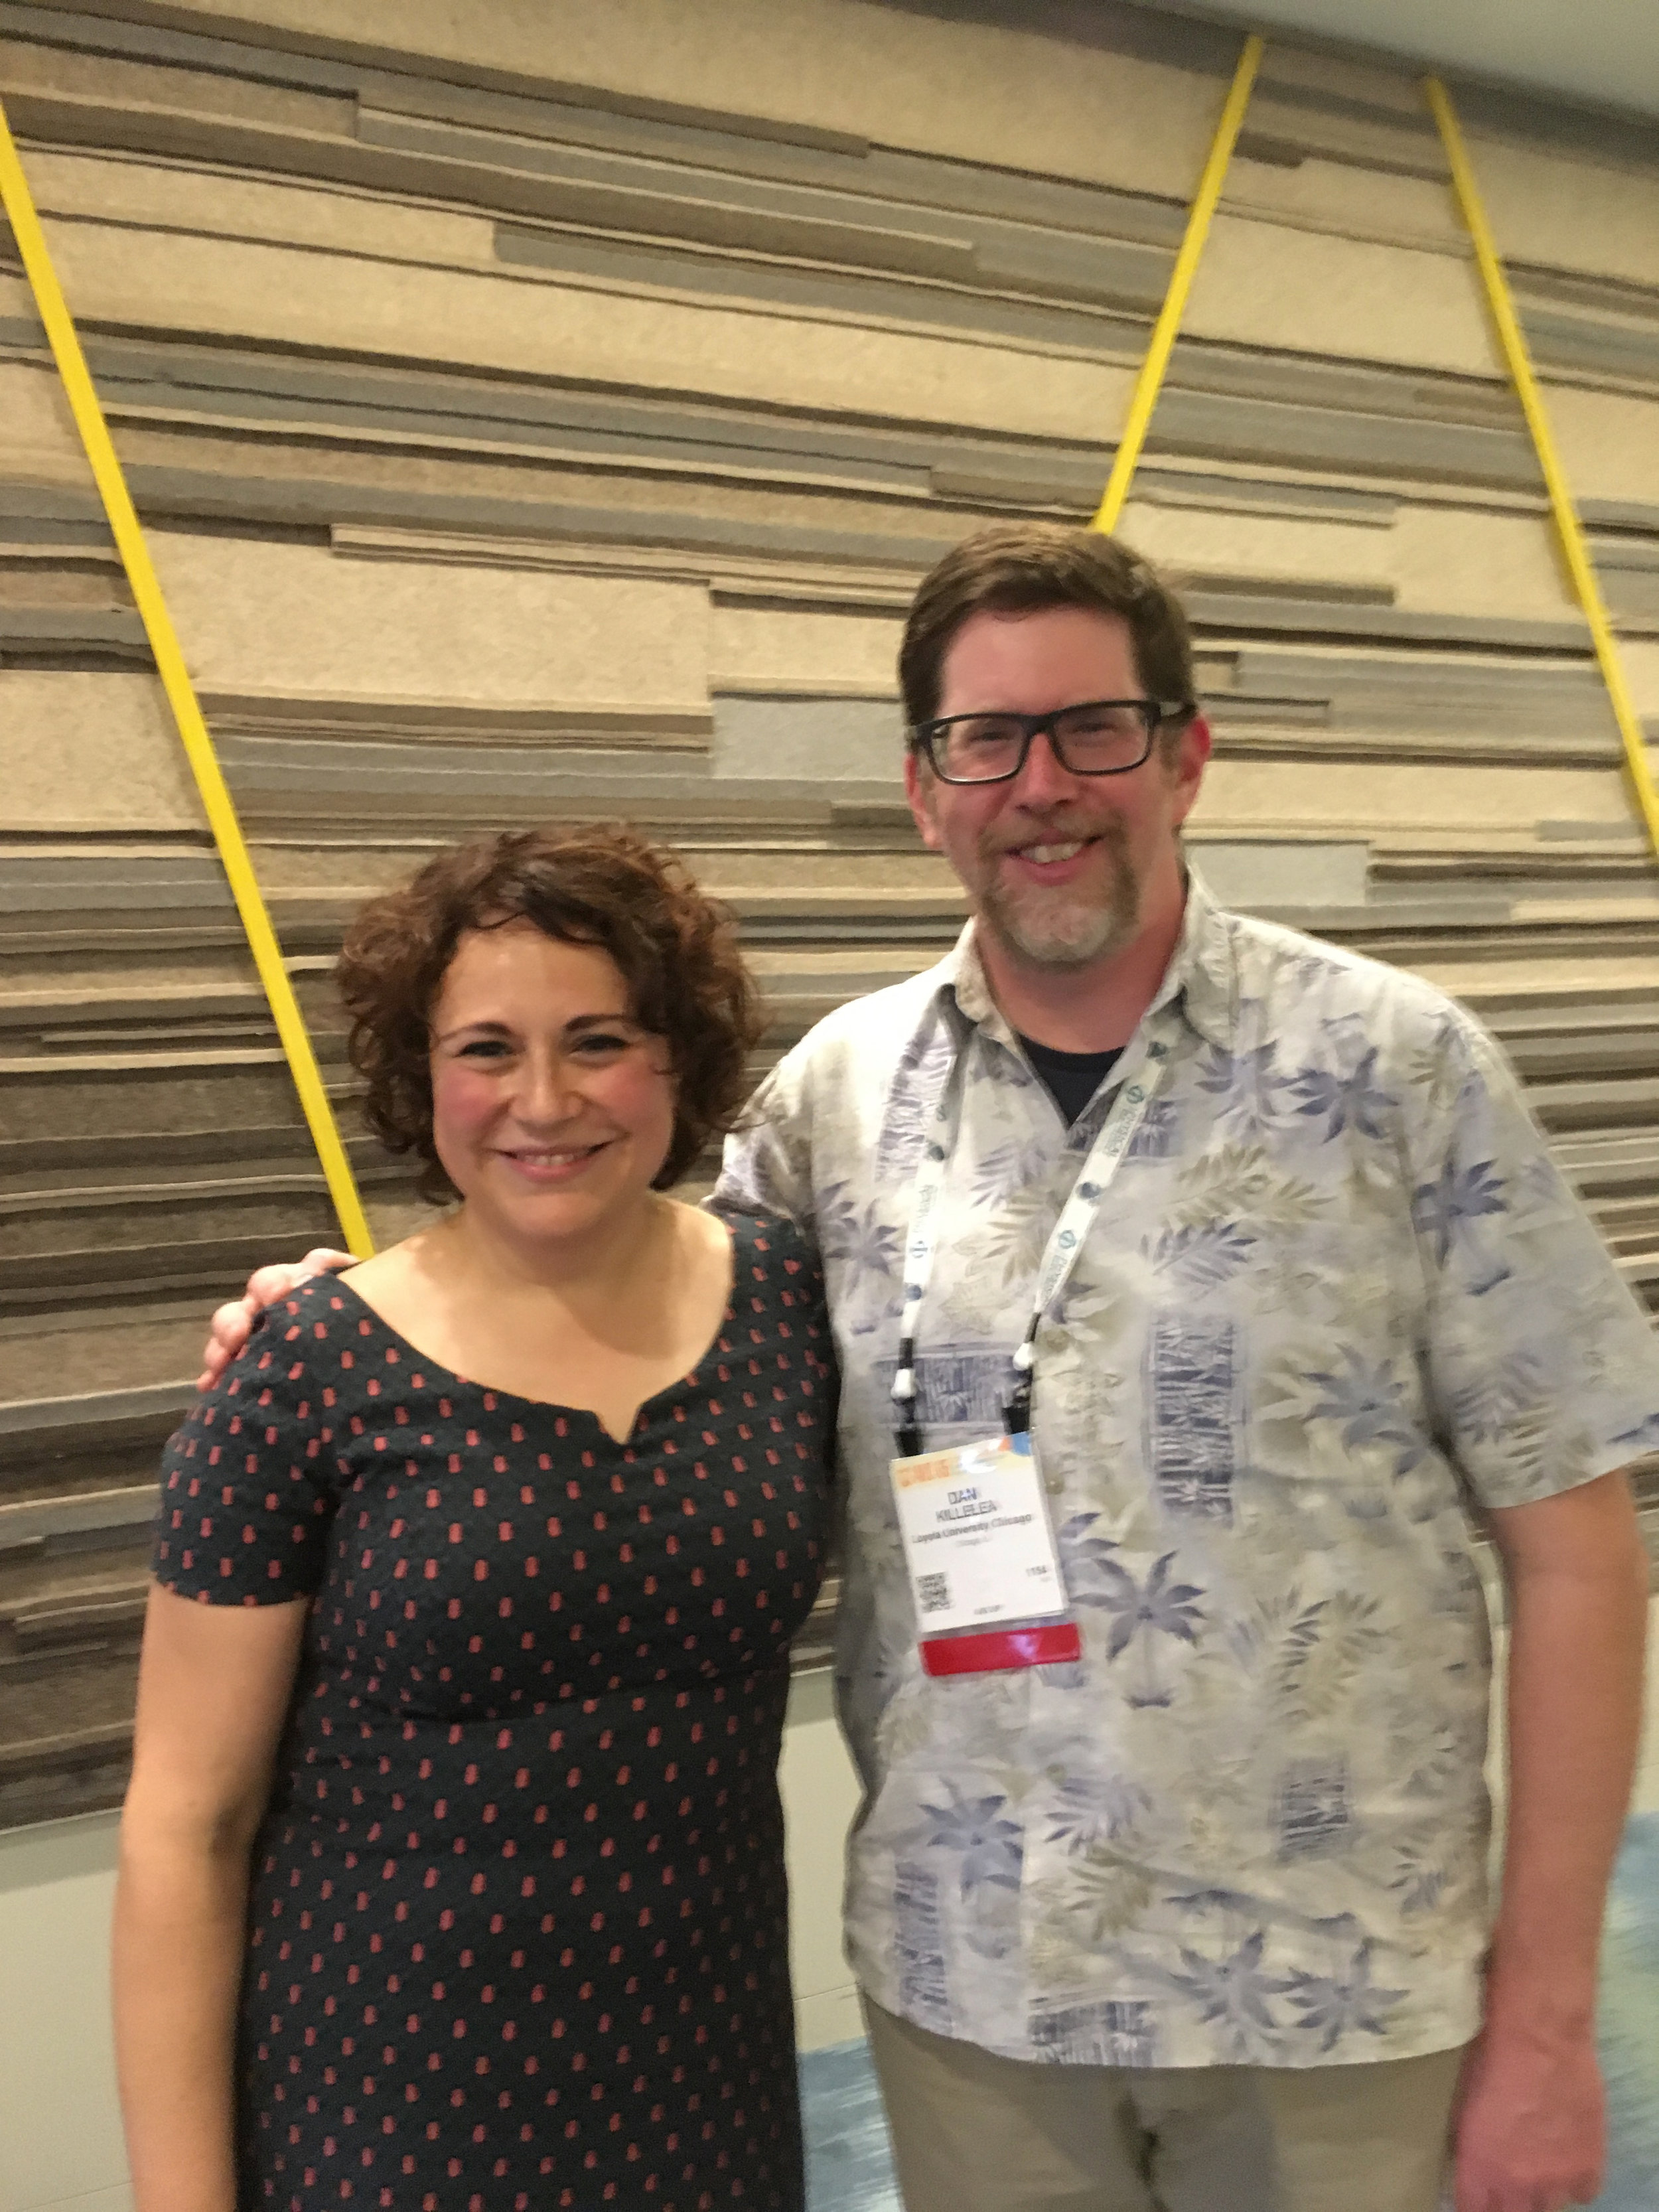 AVS 66 Program Chair Adriana Creatore (TU-Eindhoven) and AVS 67 Program Chair Dan at program dinner.